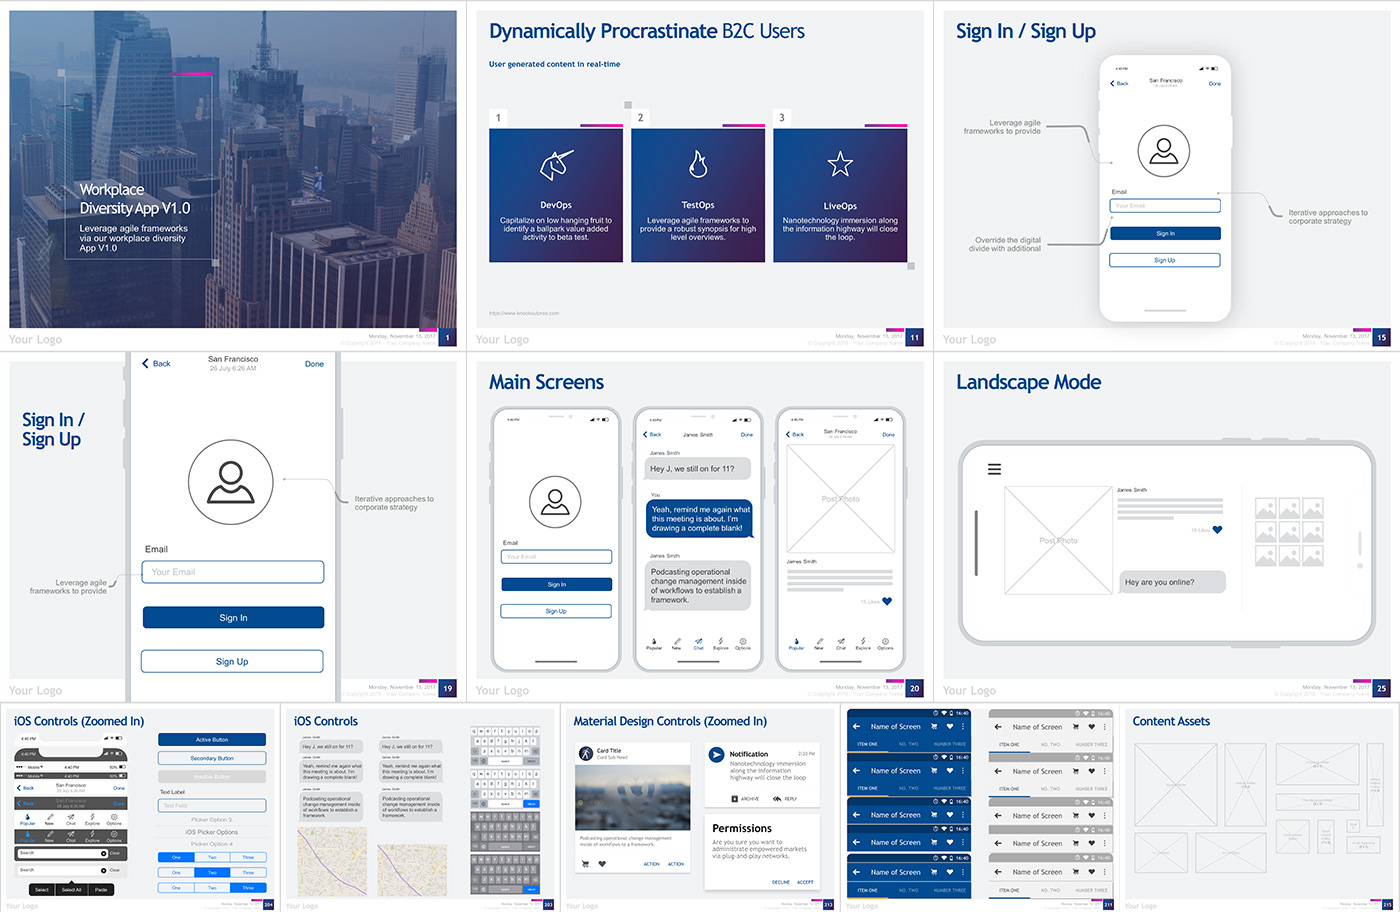 kit was designed to help you quickly create a wireframe of your app that you can share with investors and developers using only keynote or powerpoint